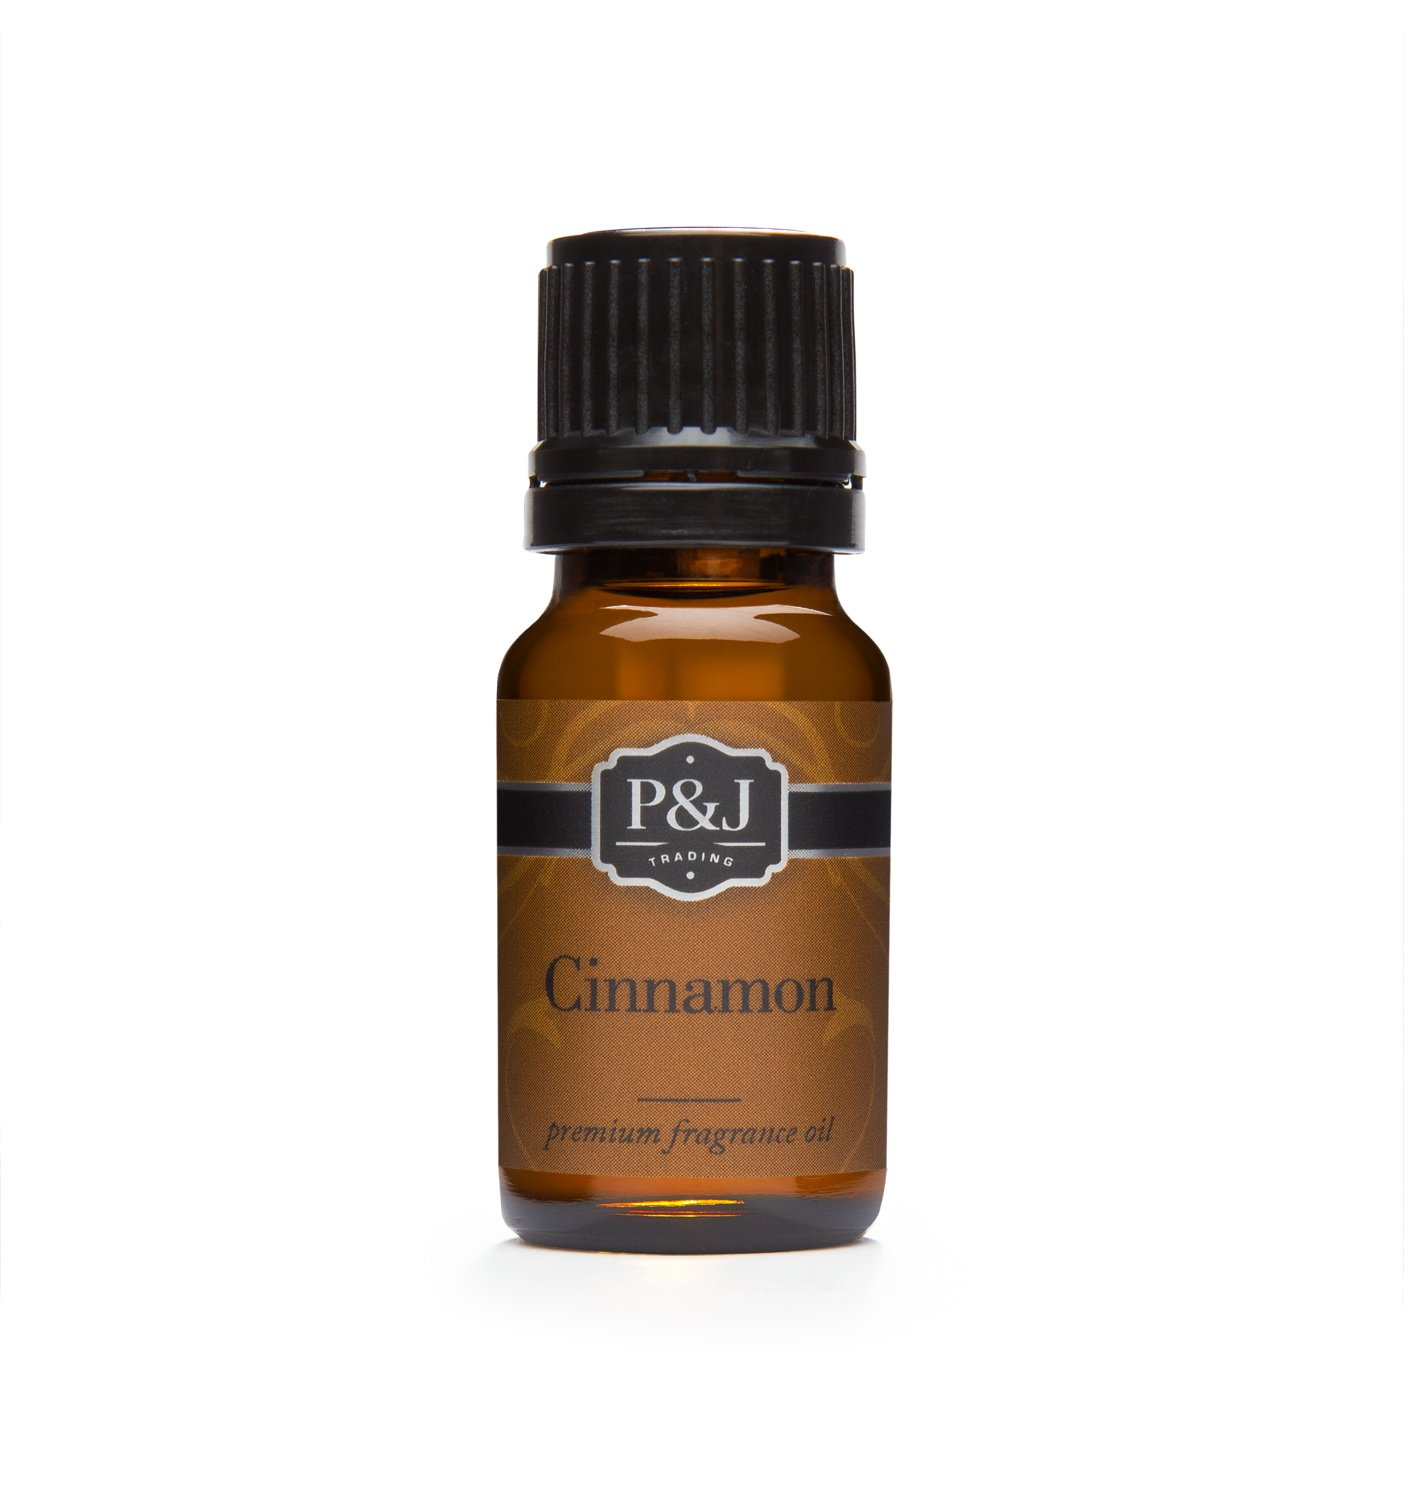 Cinnamon Premium Grade Fragrance Oil - Perfume Oil - 10ml